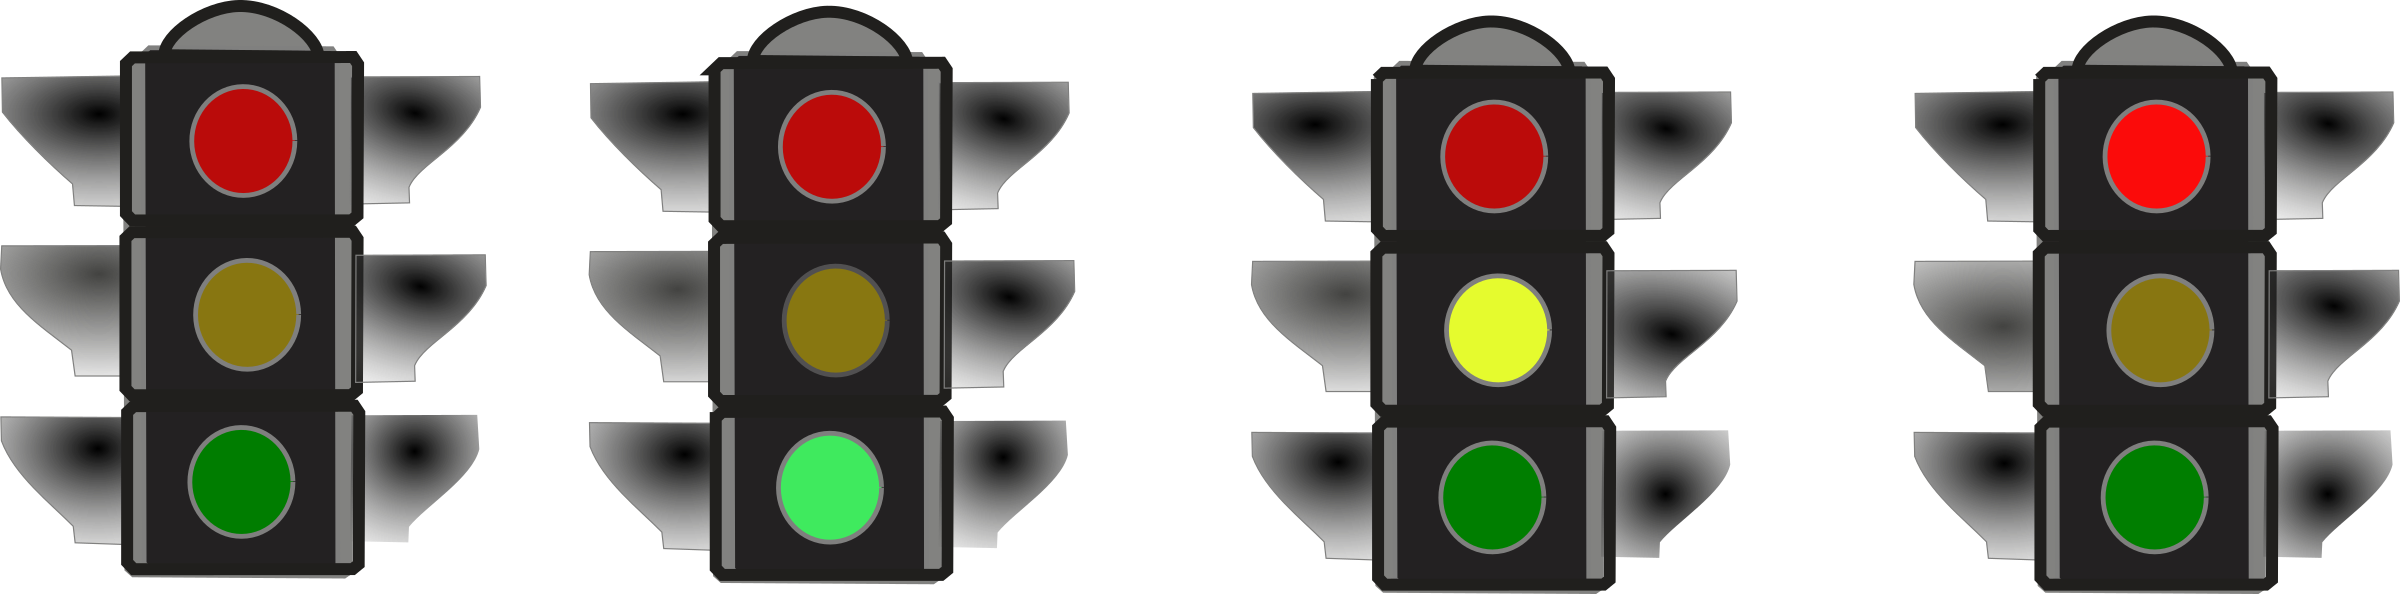 Traffic Signal by Rfc1394